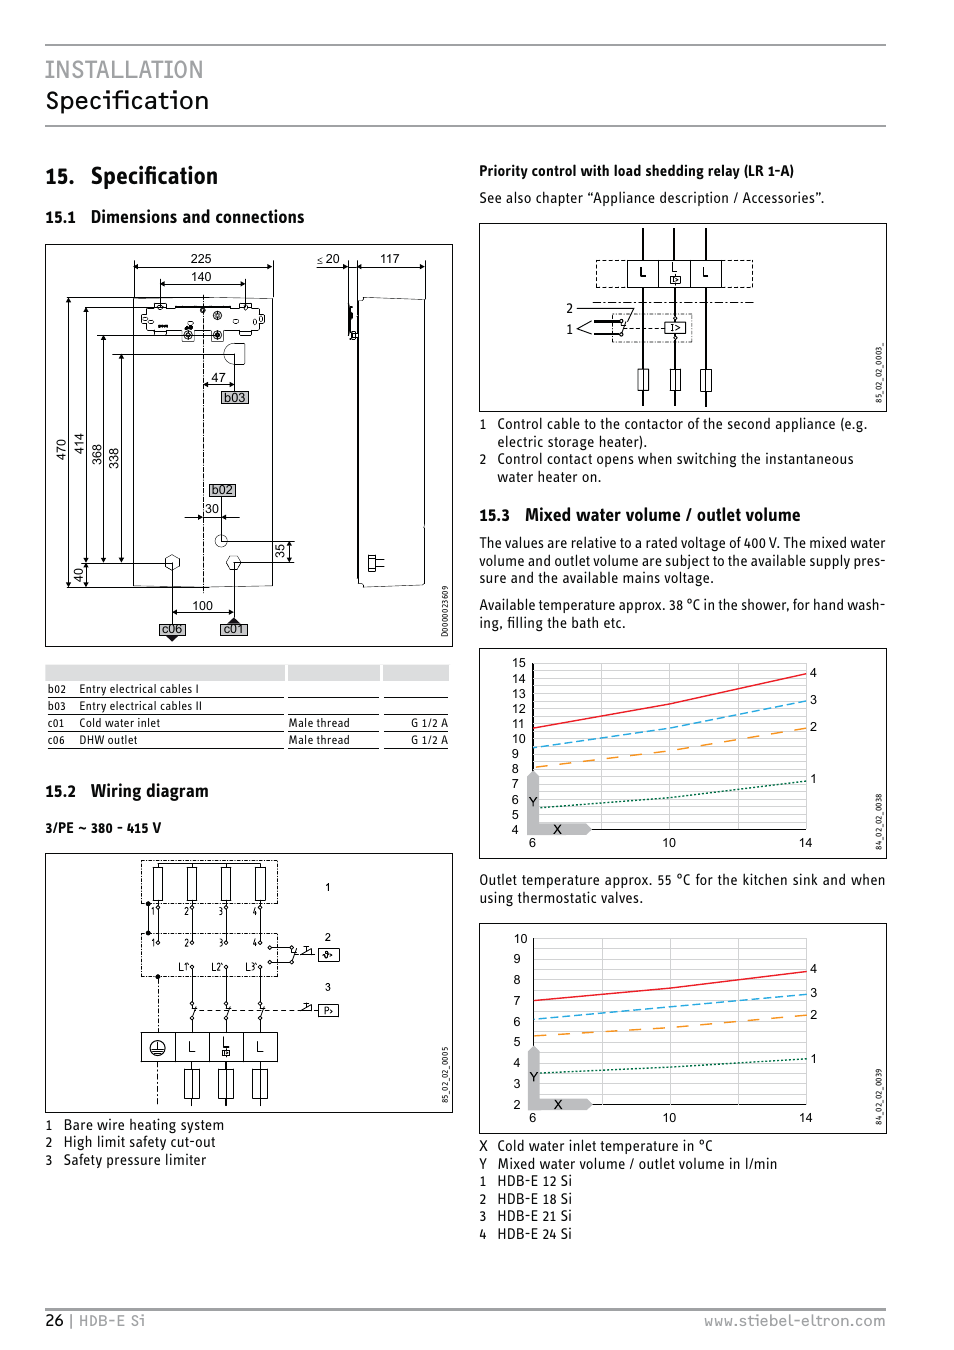 Installation Speci Cation 15 1 Dimensions And. Installation Speci Cation 15 1 Dimensions And Connections 2 Wiring Diagram Stiebel Eltron Hdbe Si 01112012 31012013 User Manual. Wiring. High Temperature Wiring Diagram For Cut Out At Scoala.co